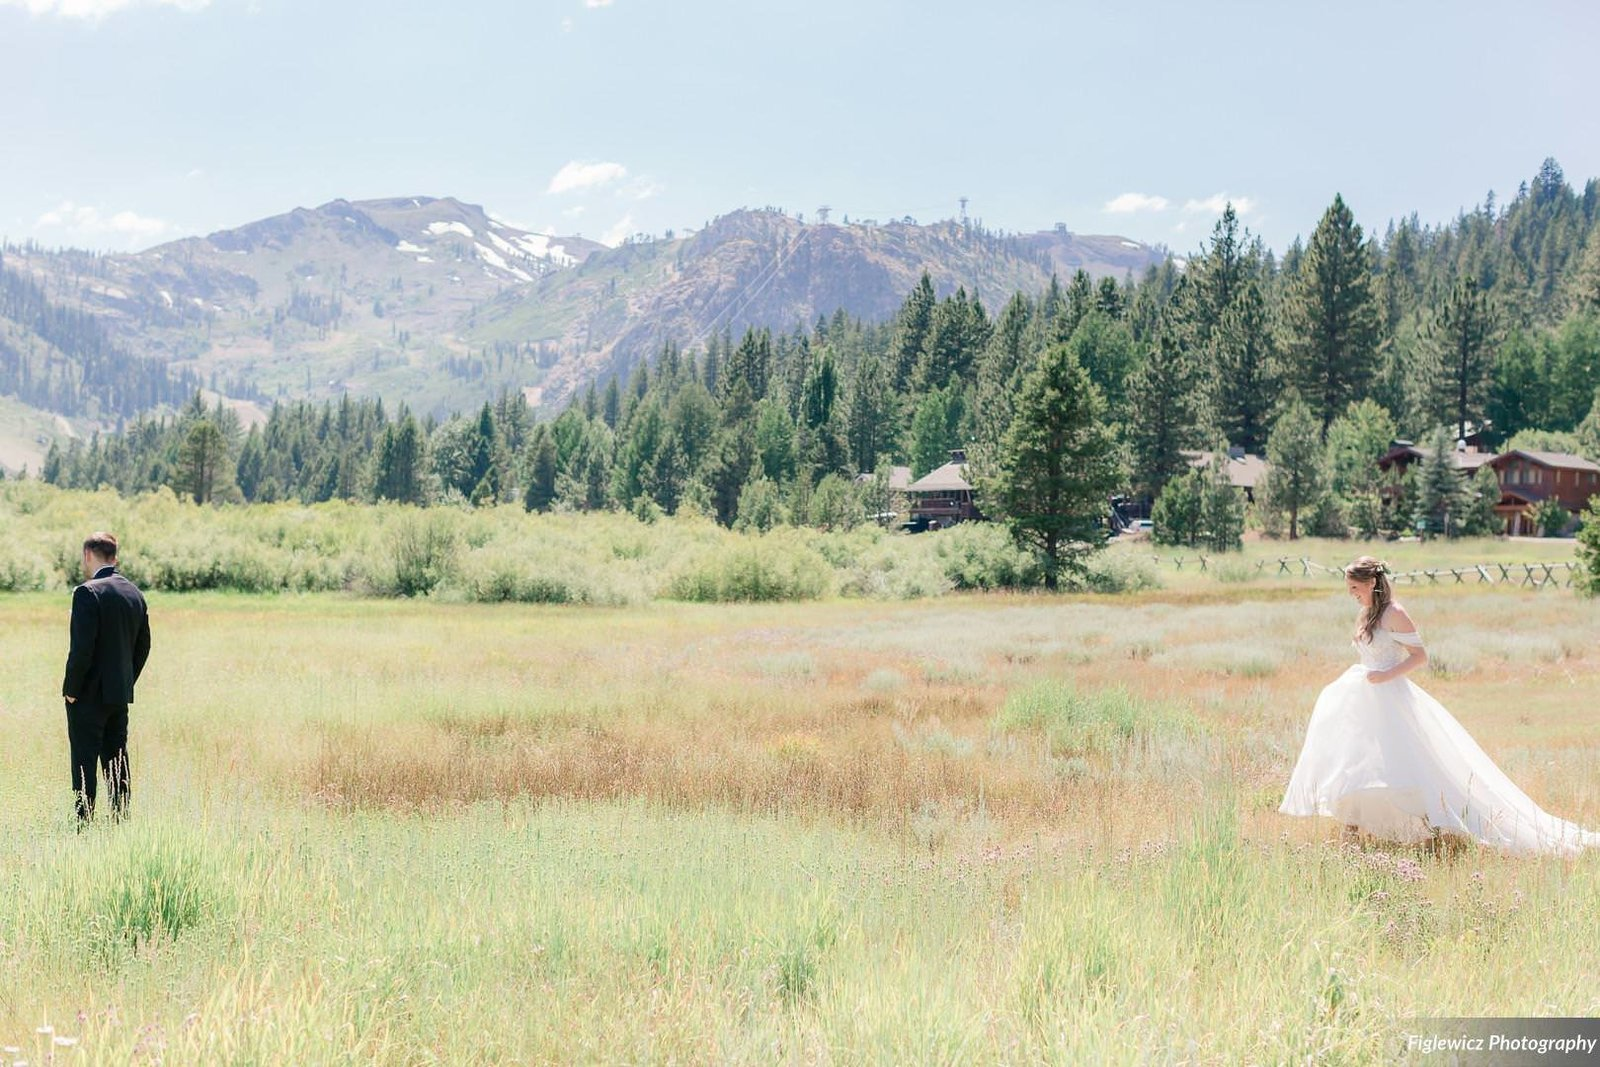 Garden_Tinsley_FiglewiczPhotography_LakeTahoeWeddingSquawValleyCreekTaylorBrendan00016_big